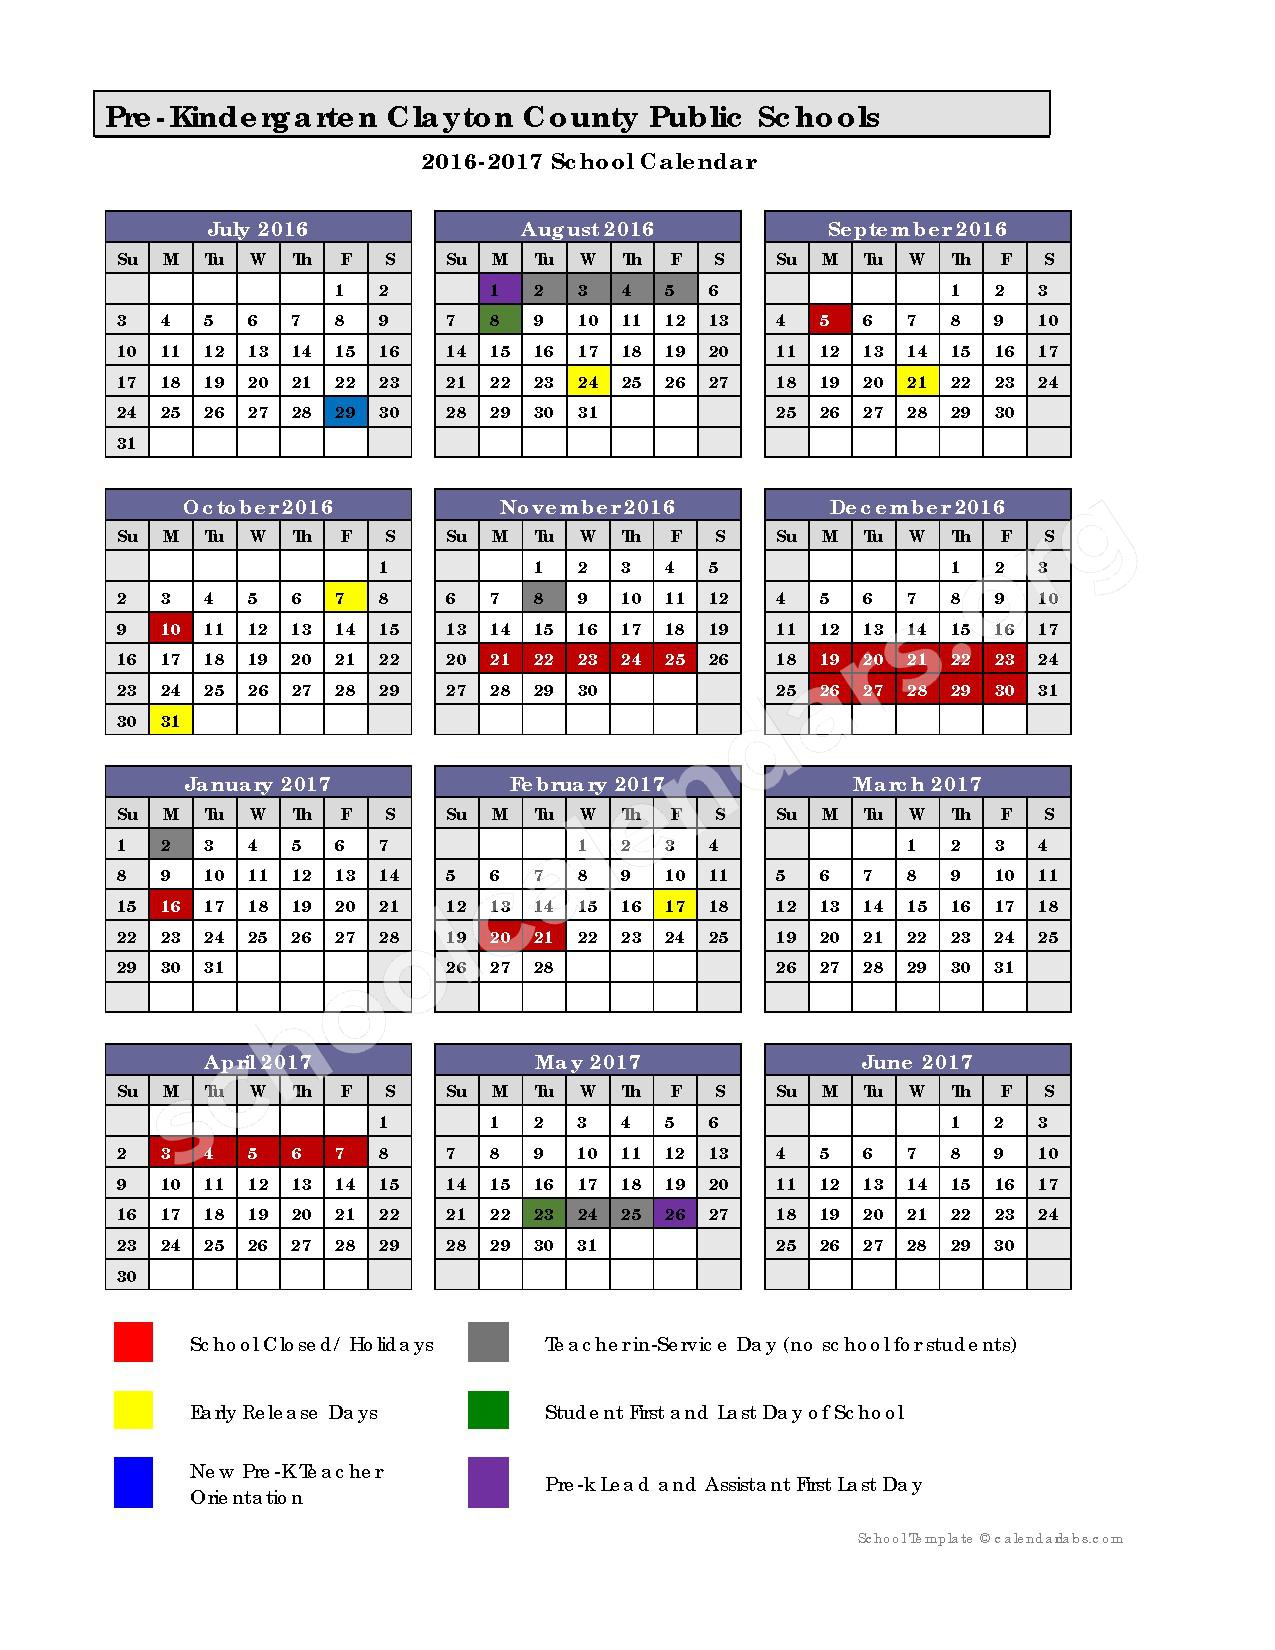 Clayton County School Calendar 2016   2017 Pre K Calendar | Clayton County School District